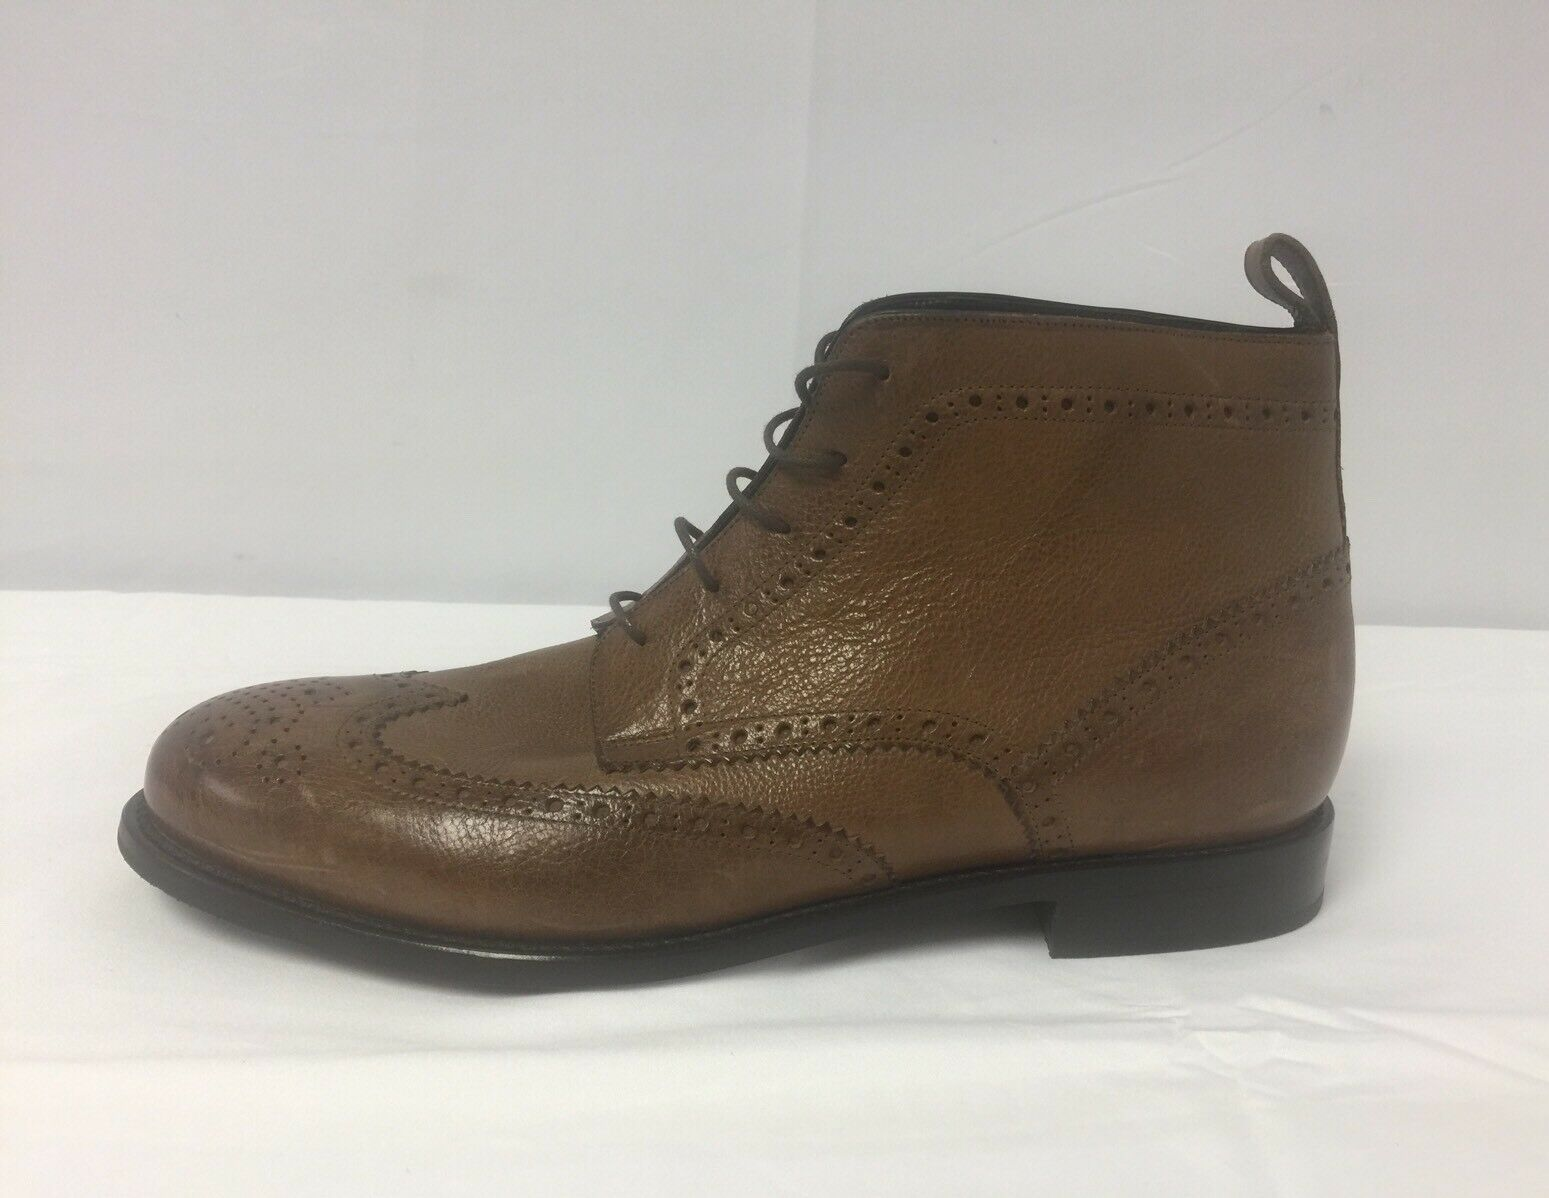 New Canali Canali Canali Perforated Wingtip Lace Up Brown Pelle Stivali Size 45EU/12US  995.00 835722